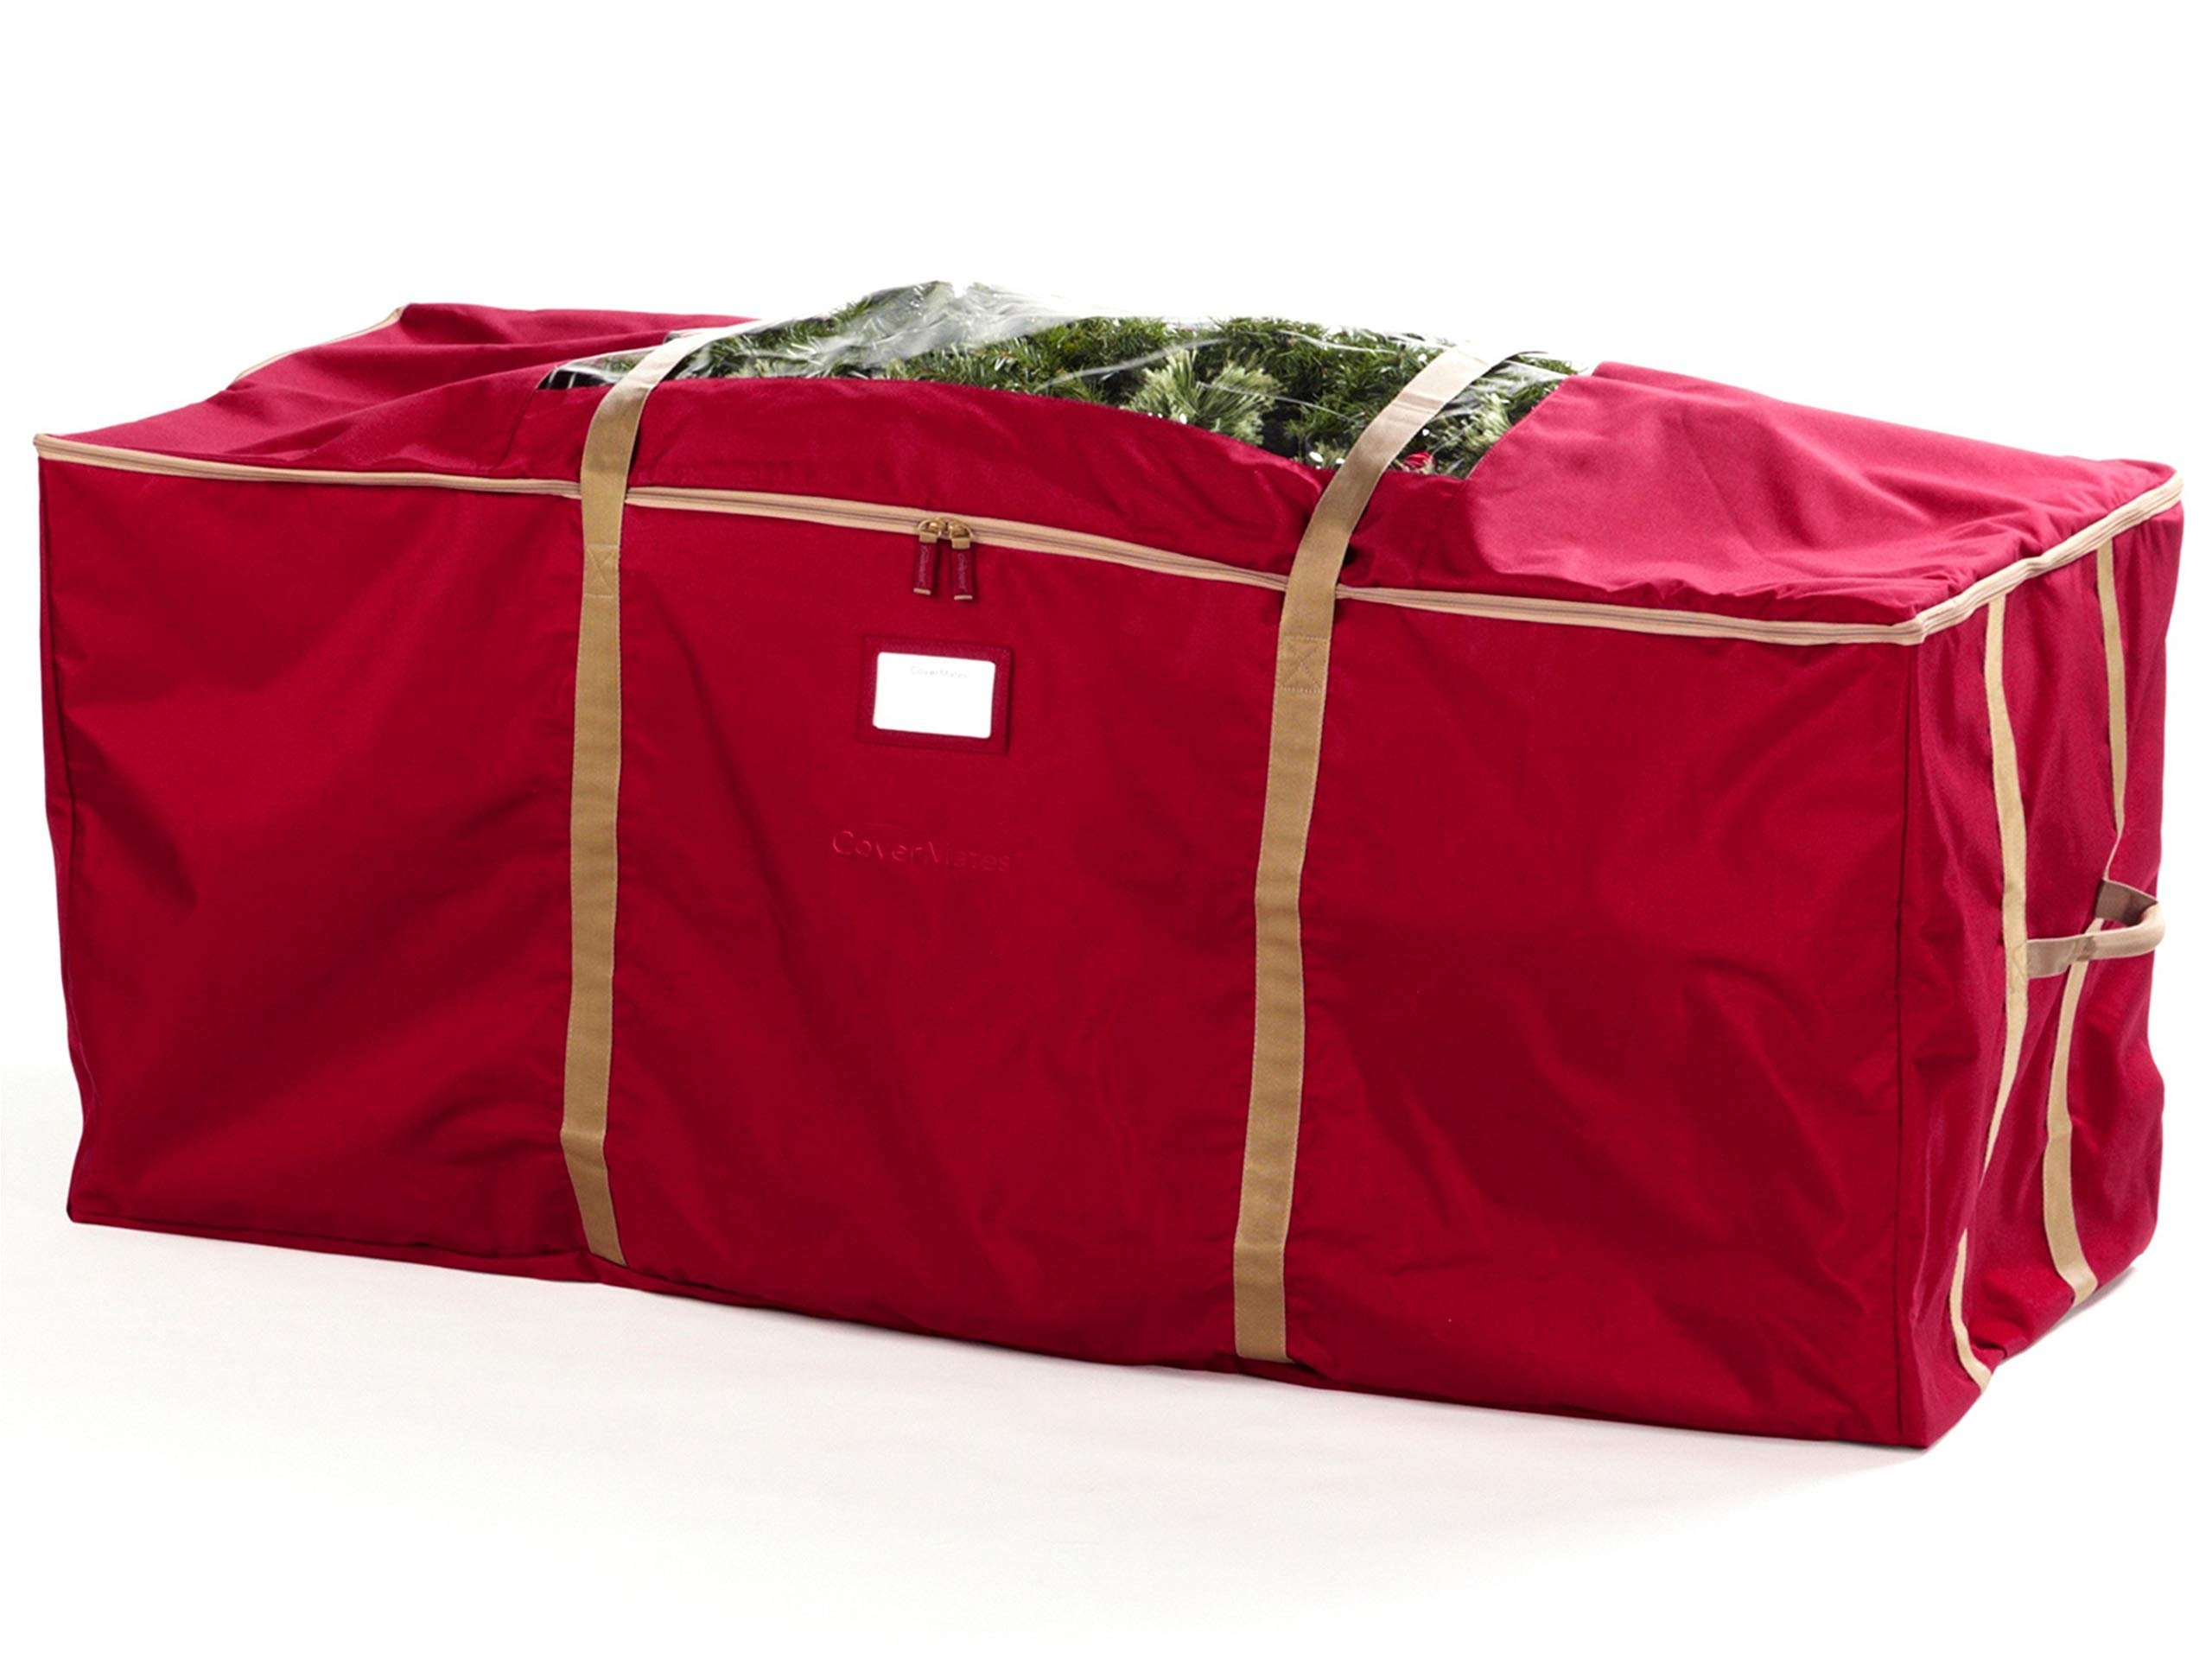 Covermates - Holiday Tree Storage Bag - Fits 9 to 11 Foot Tree - 3 Year Warranty - Red by Covermates